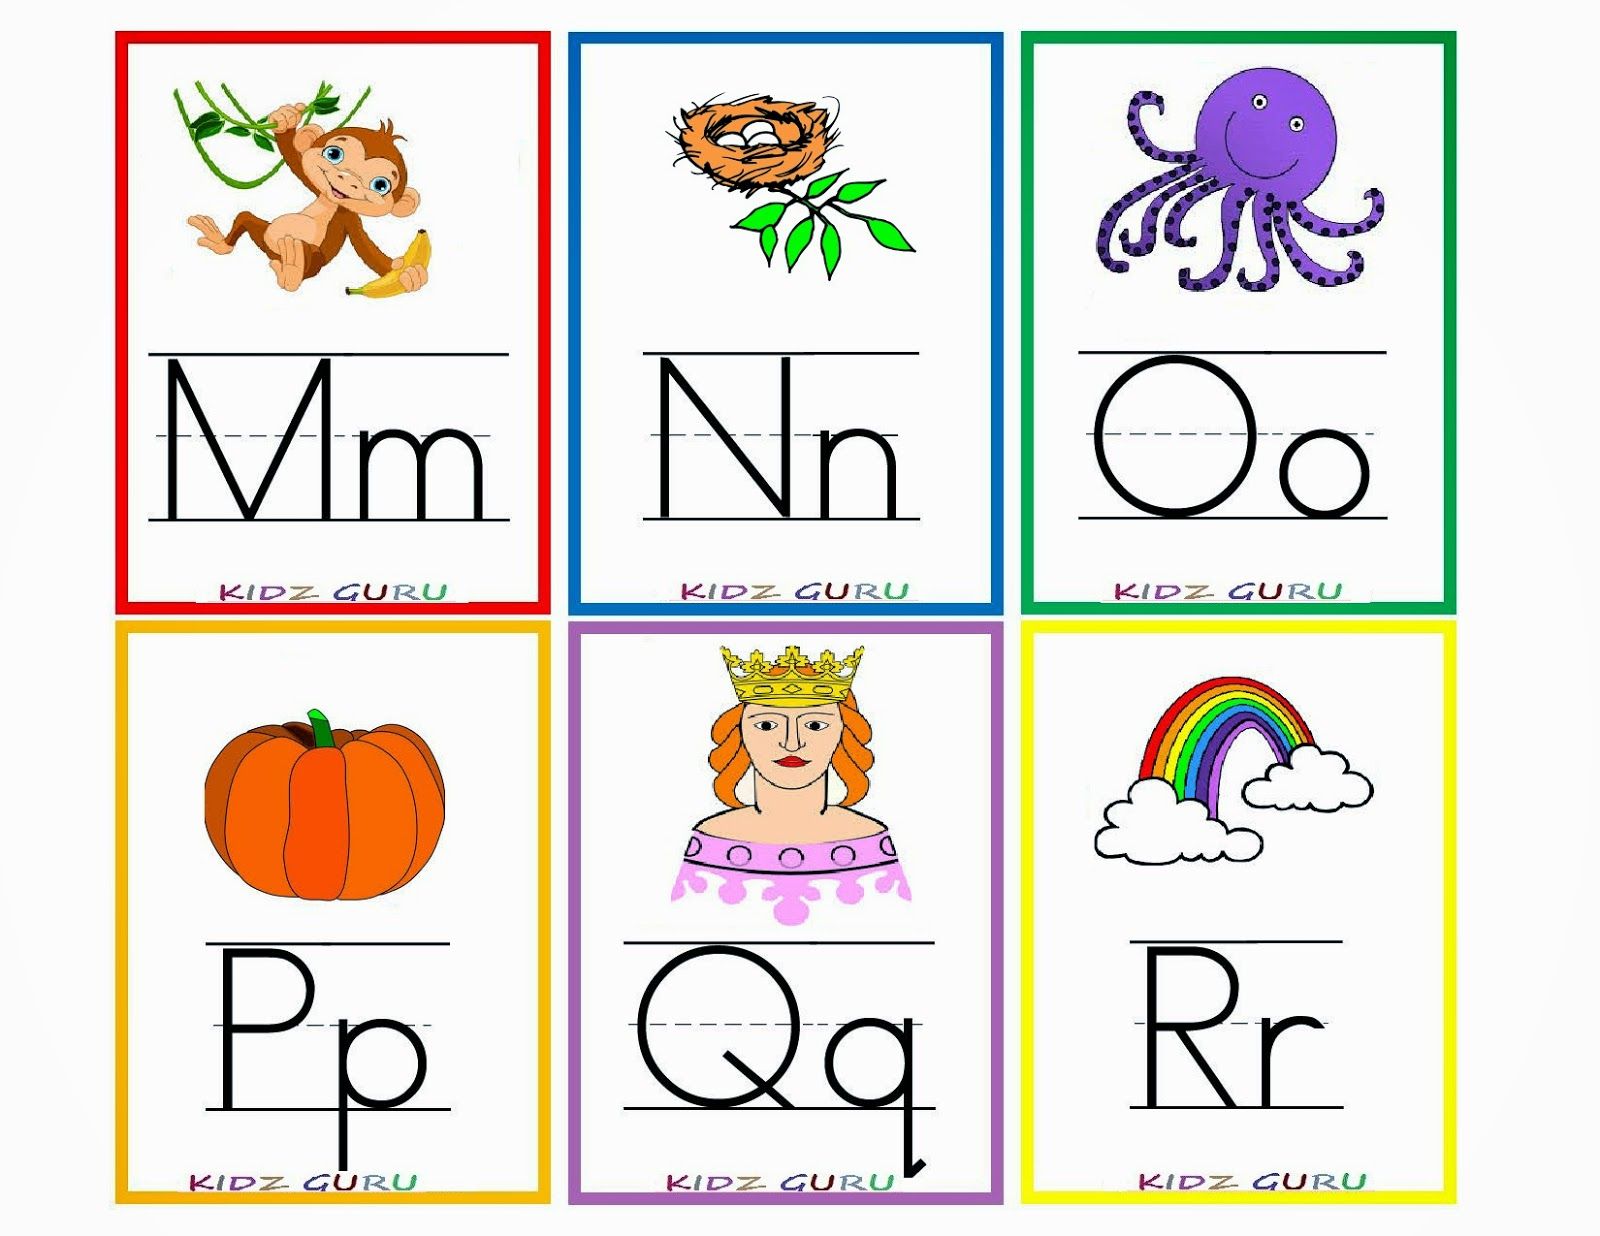 Kindergarten Worksheets: Printable Worksheets